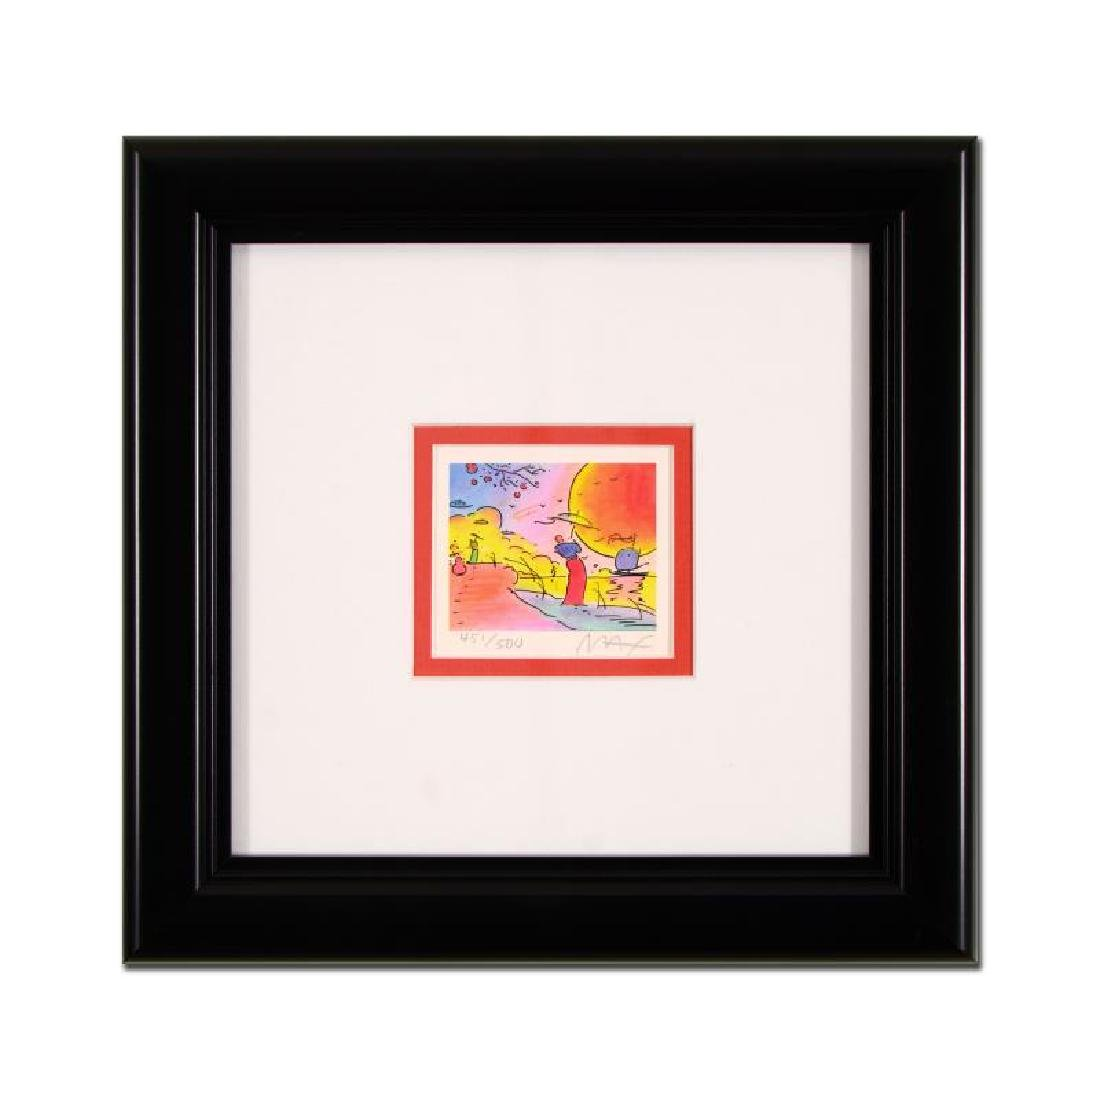 "Peter Max - ""Two Sages IV"" Framed Limited Edition"